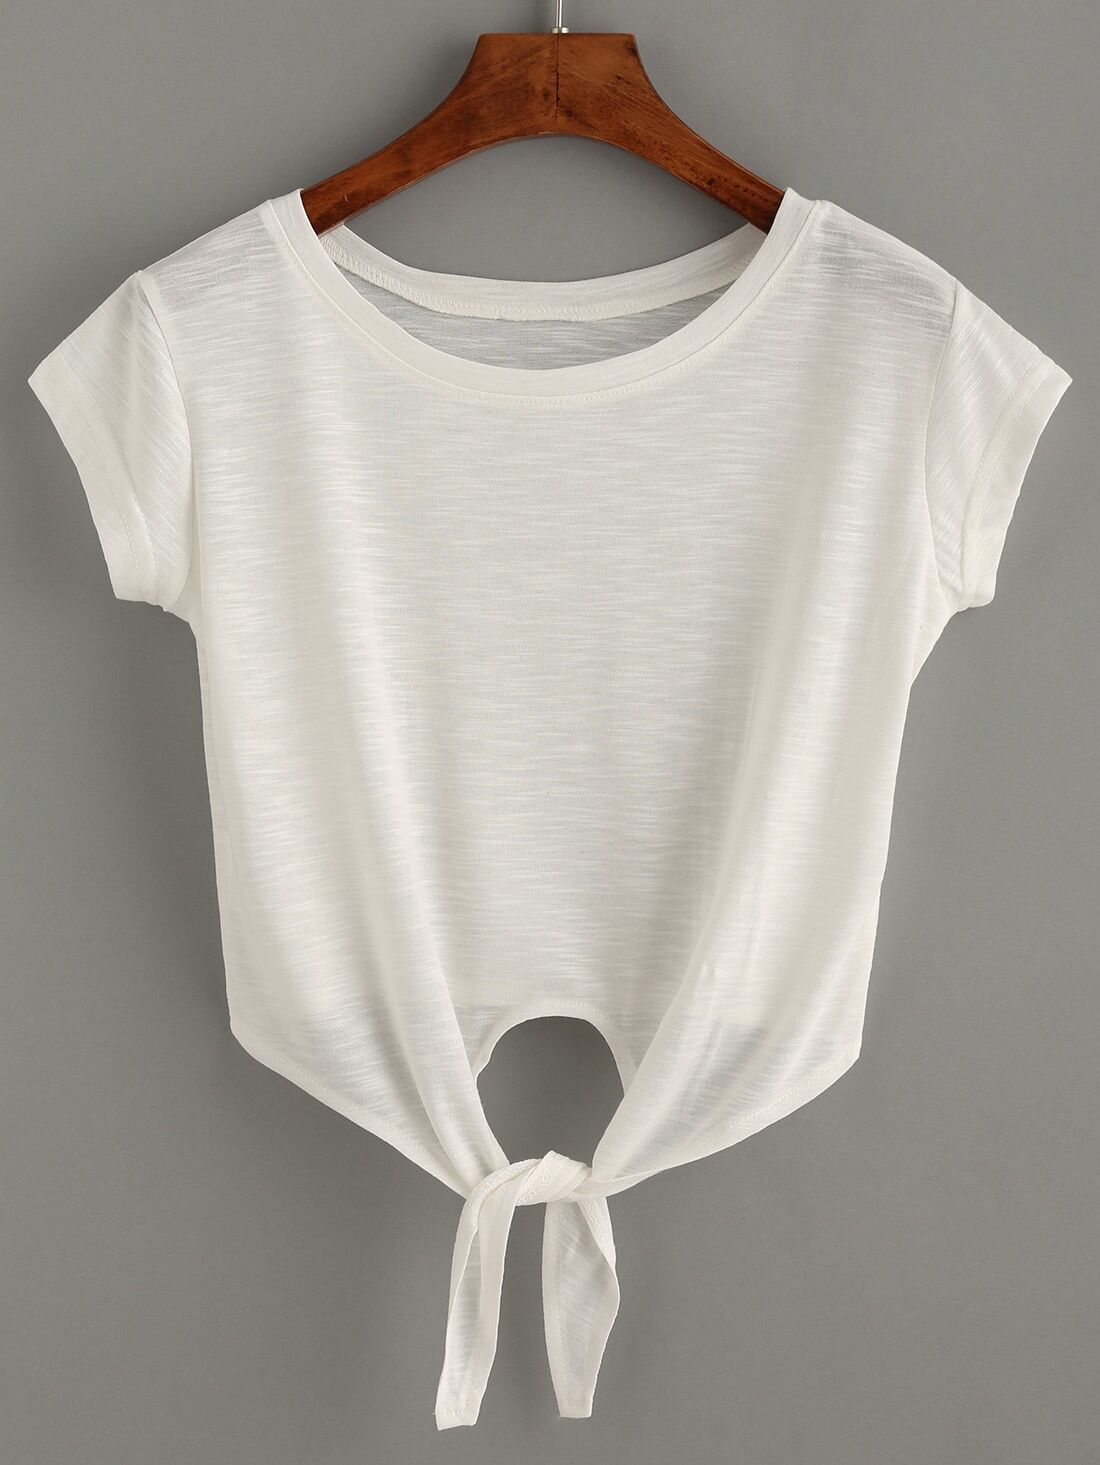 how to make a crop top from a t shirt